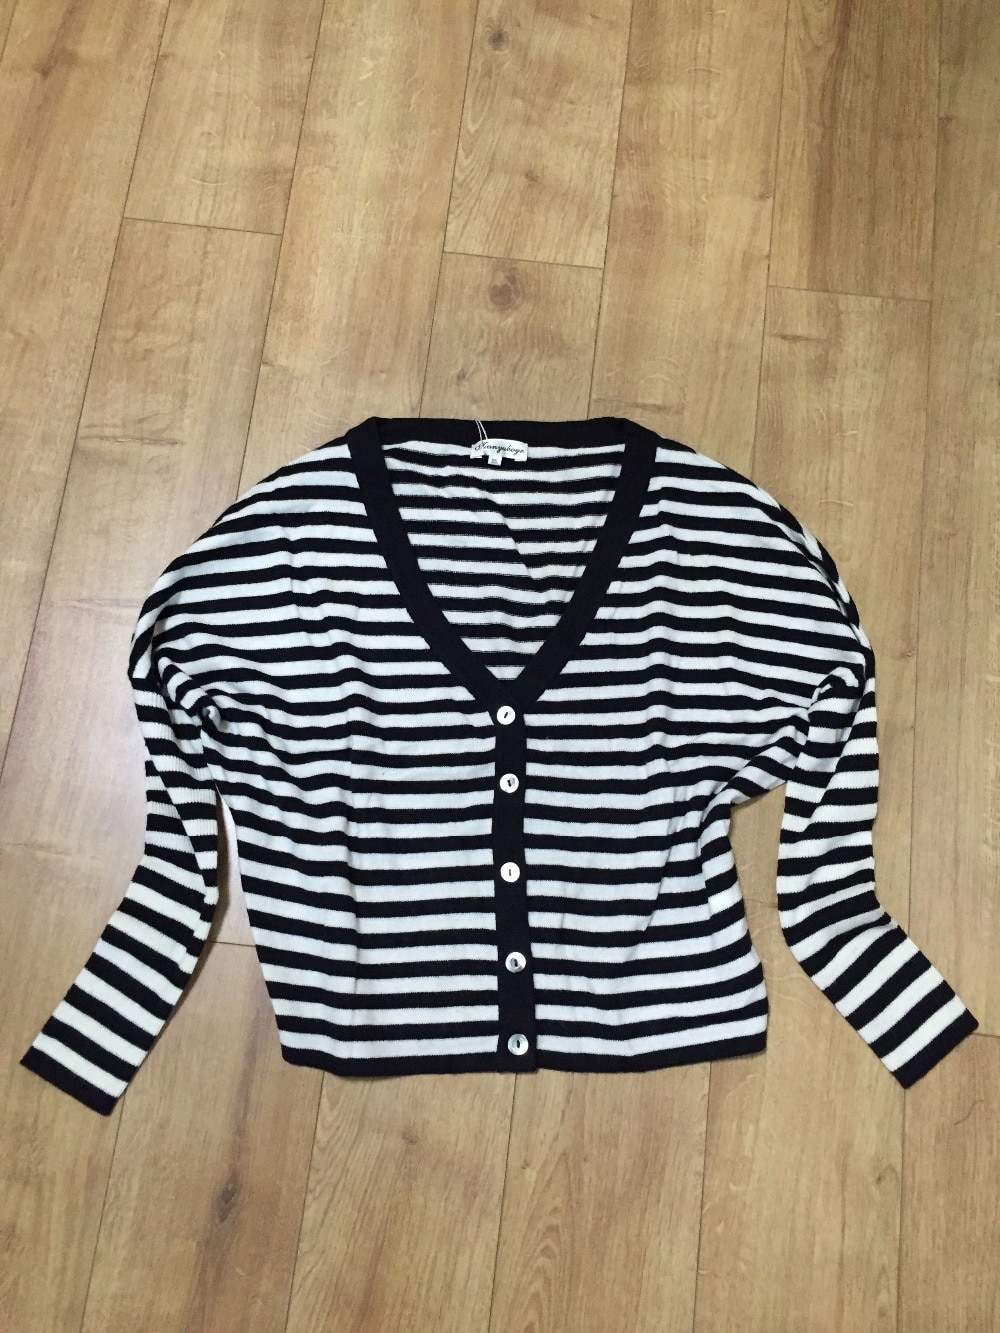 Pure Cashmere Sweater Fashion V-neck Black White Stripe Cardigans Women Natural Warm High Quality Clearance Sale Free Shipping enlarge